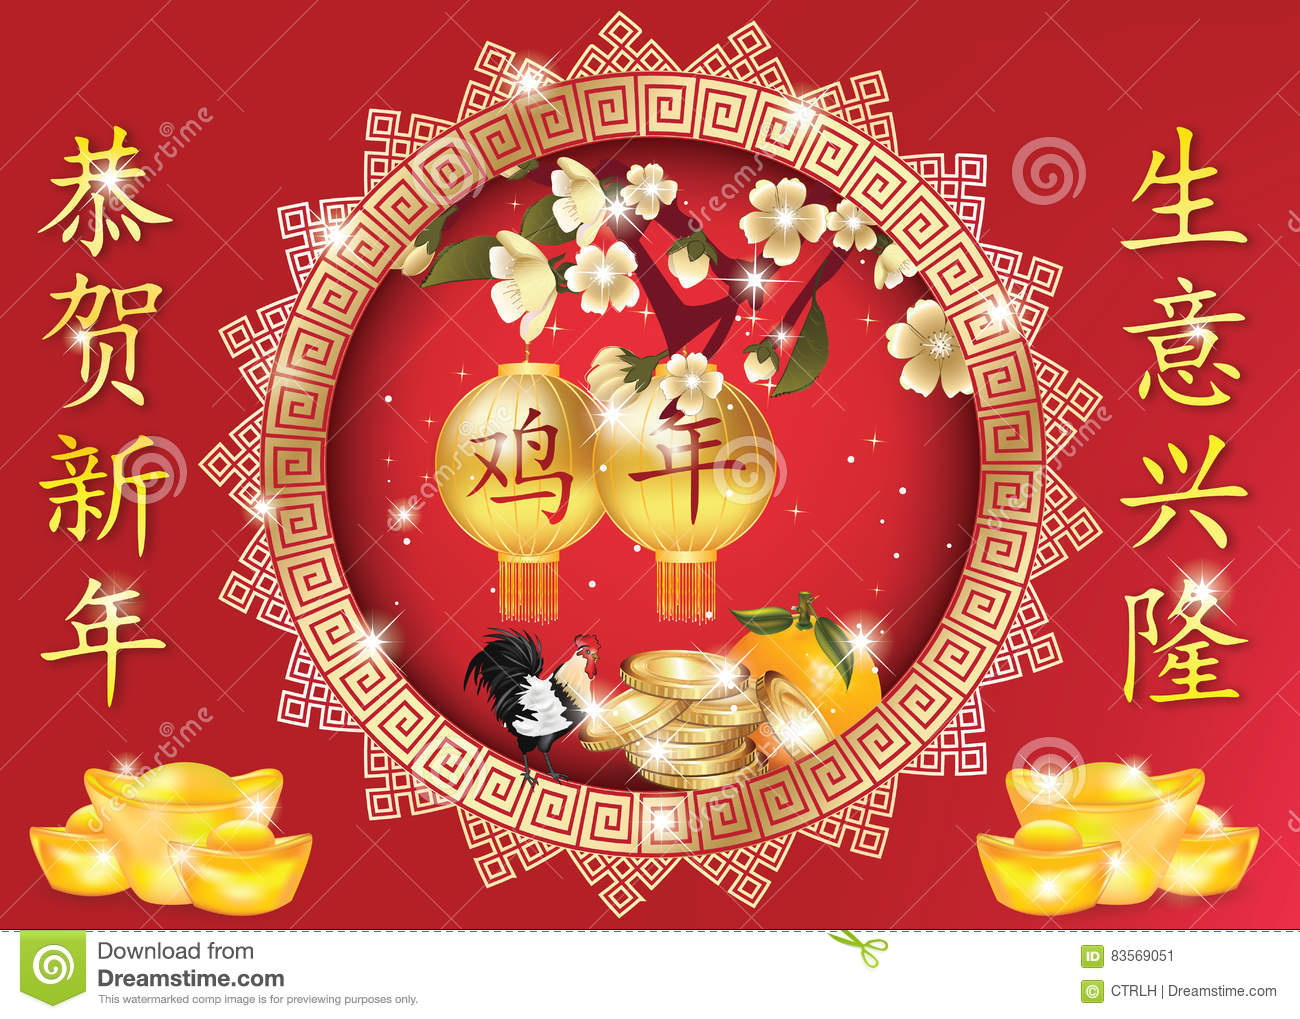 Chinese new year business greeting card 2017 stock photo image of business chinese new year 2017 greeting card stock image m4hsunfo Gallery